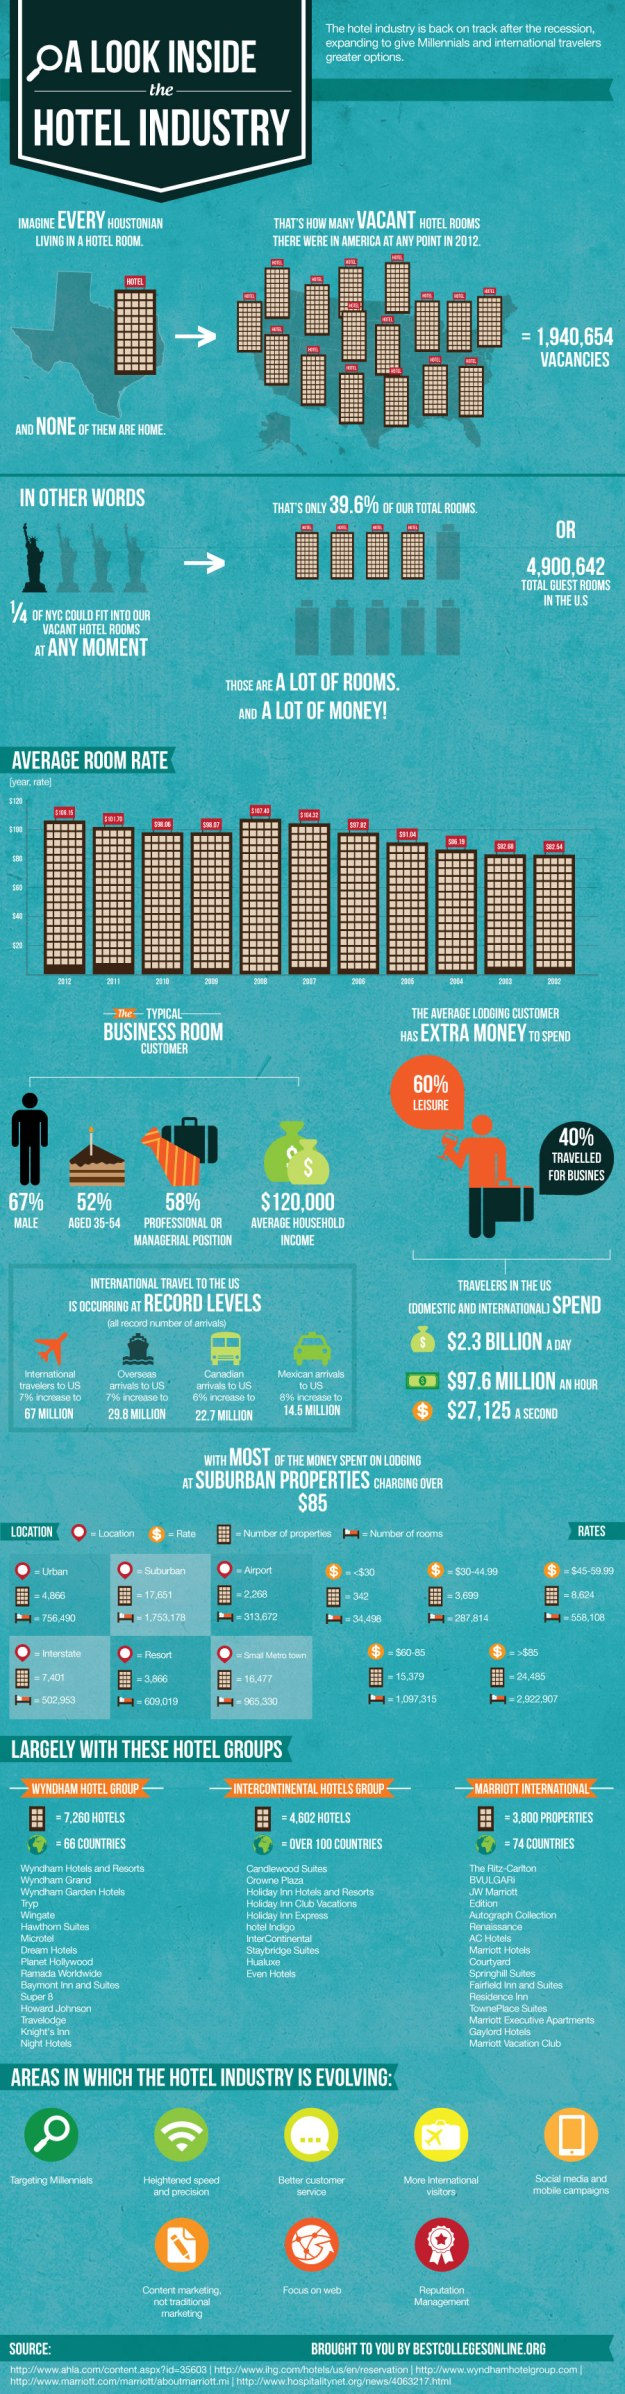 A Look Inside the U.S. Hotel Industry